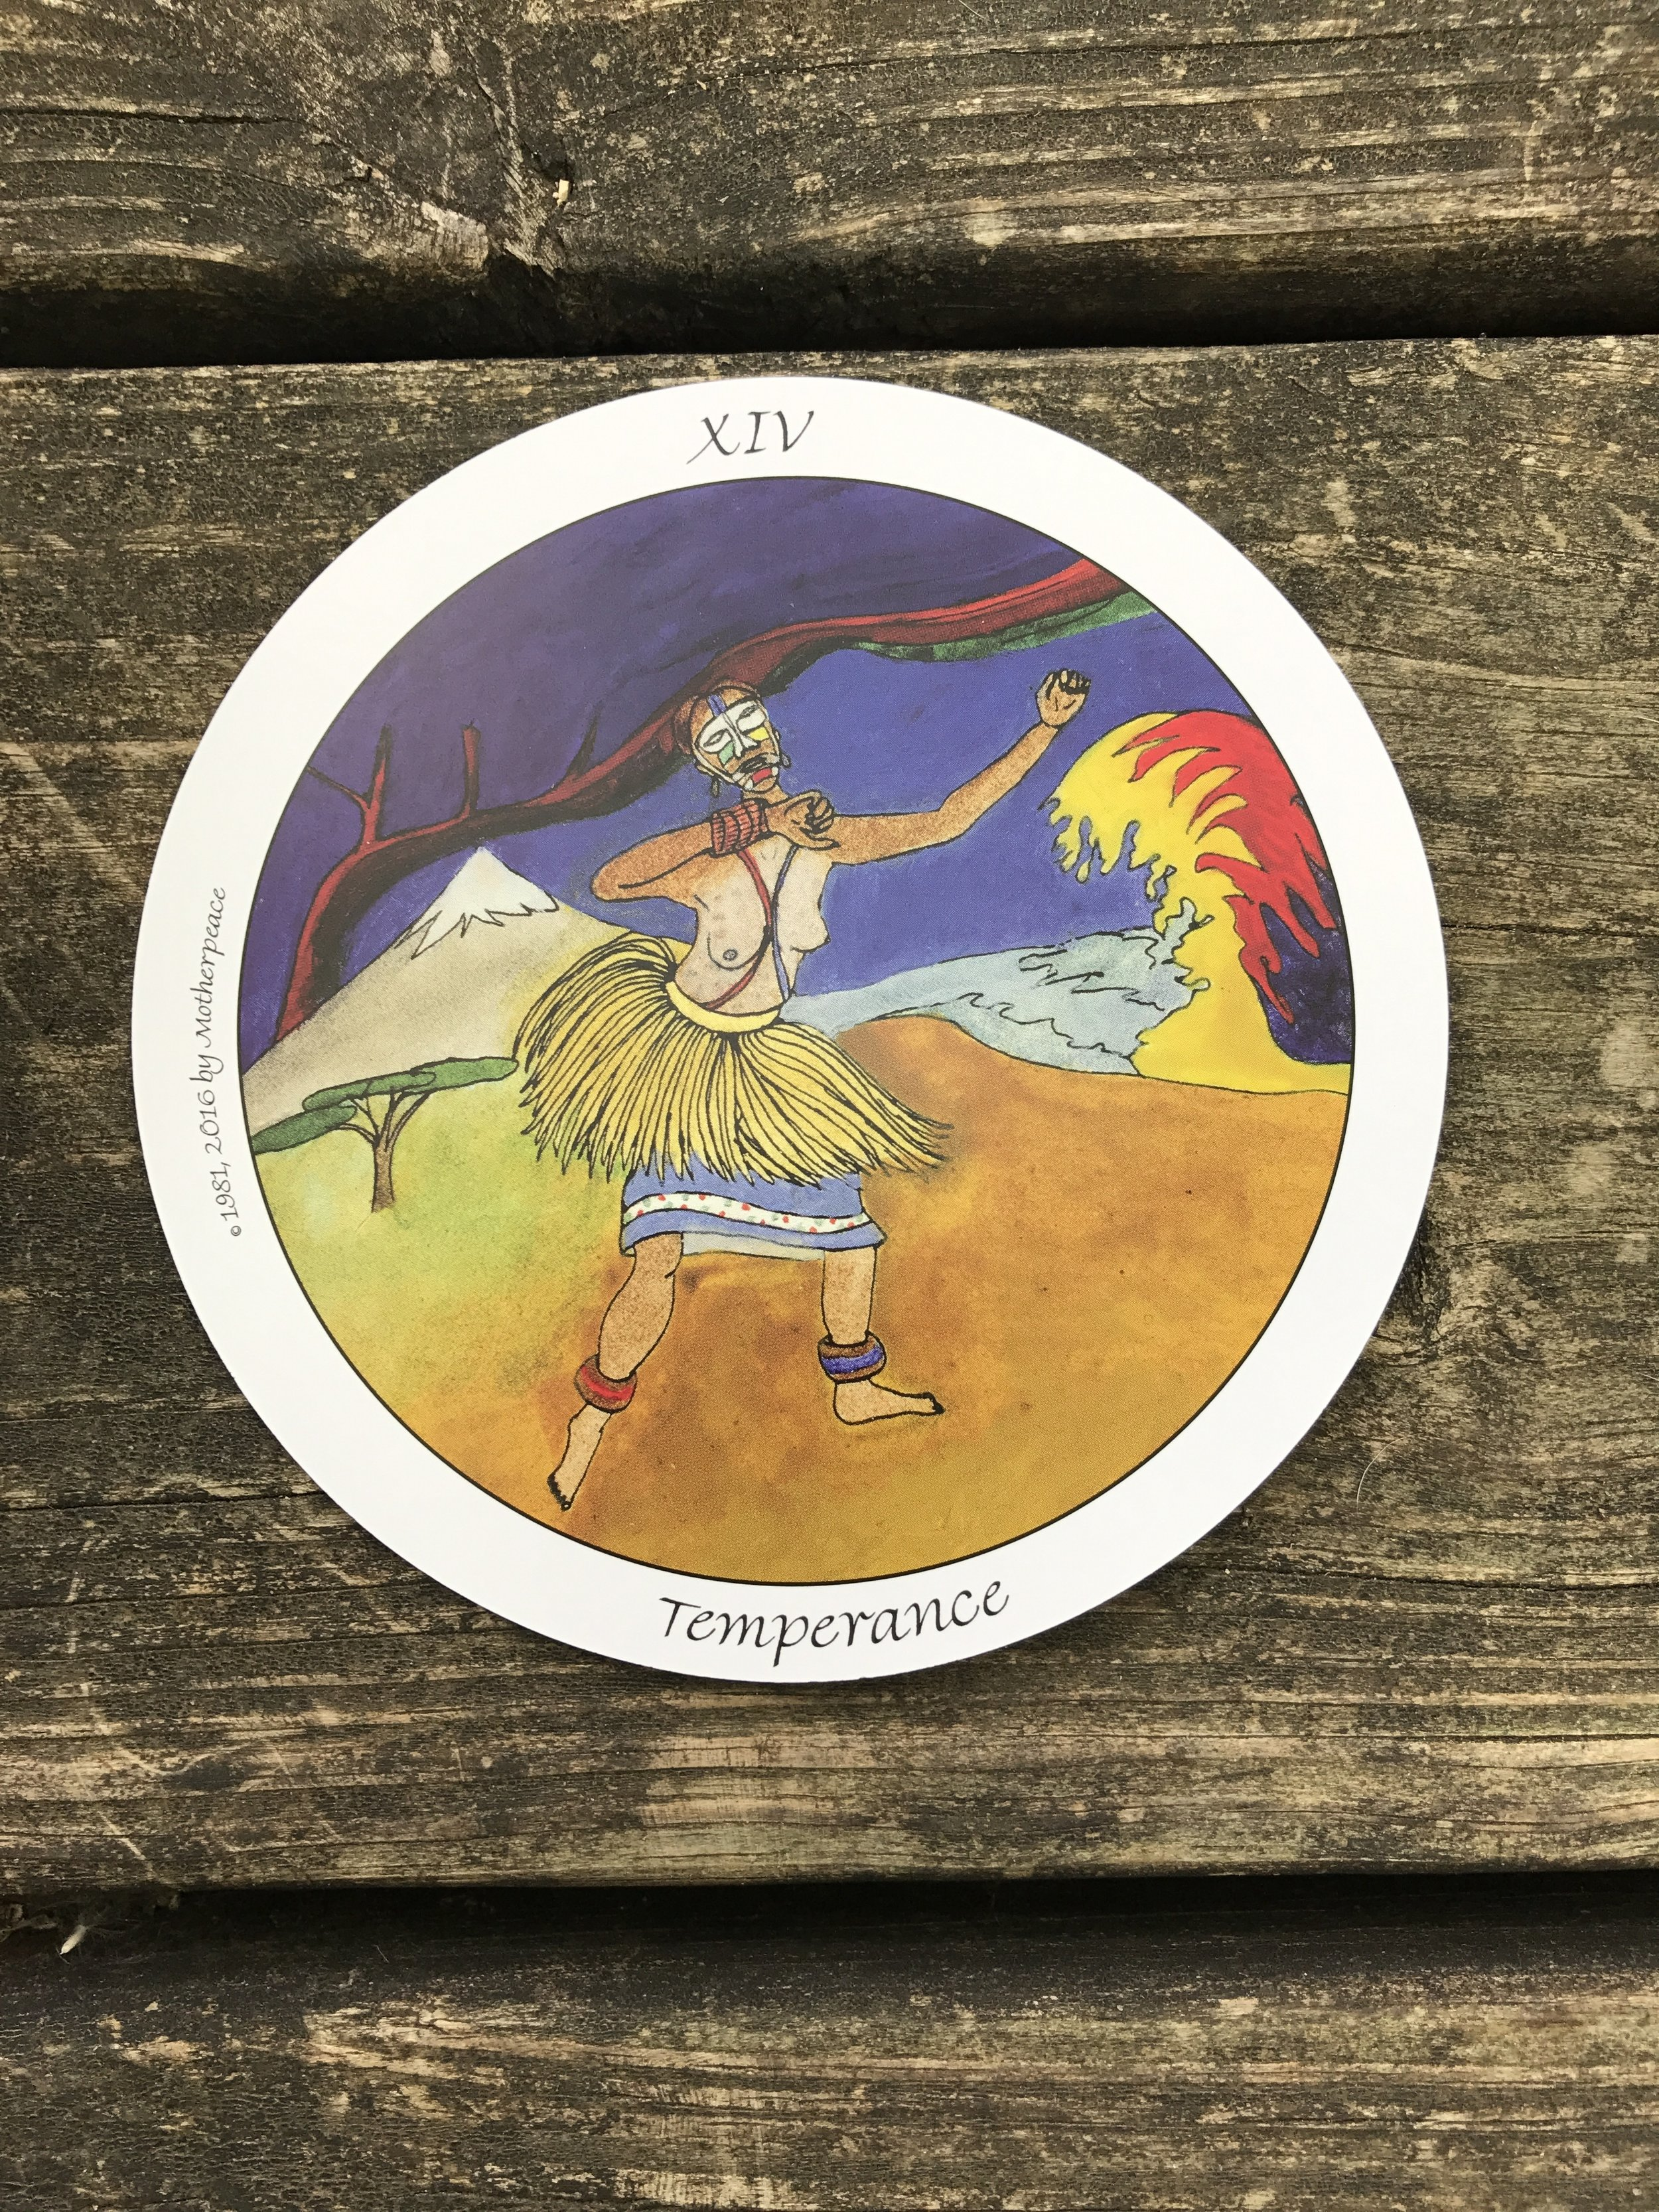 Temperance from Motherpeace